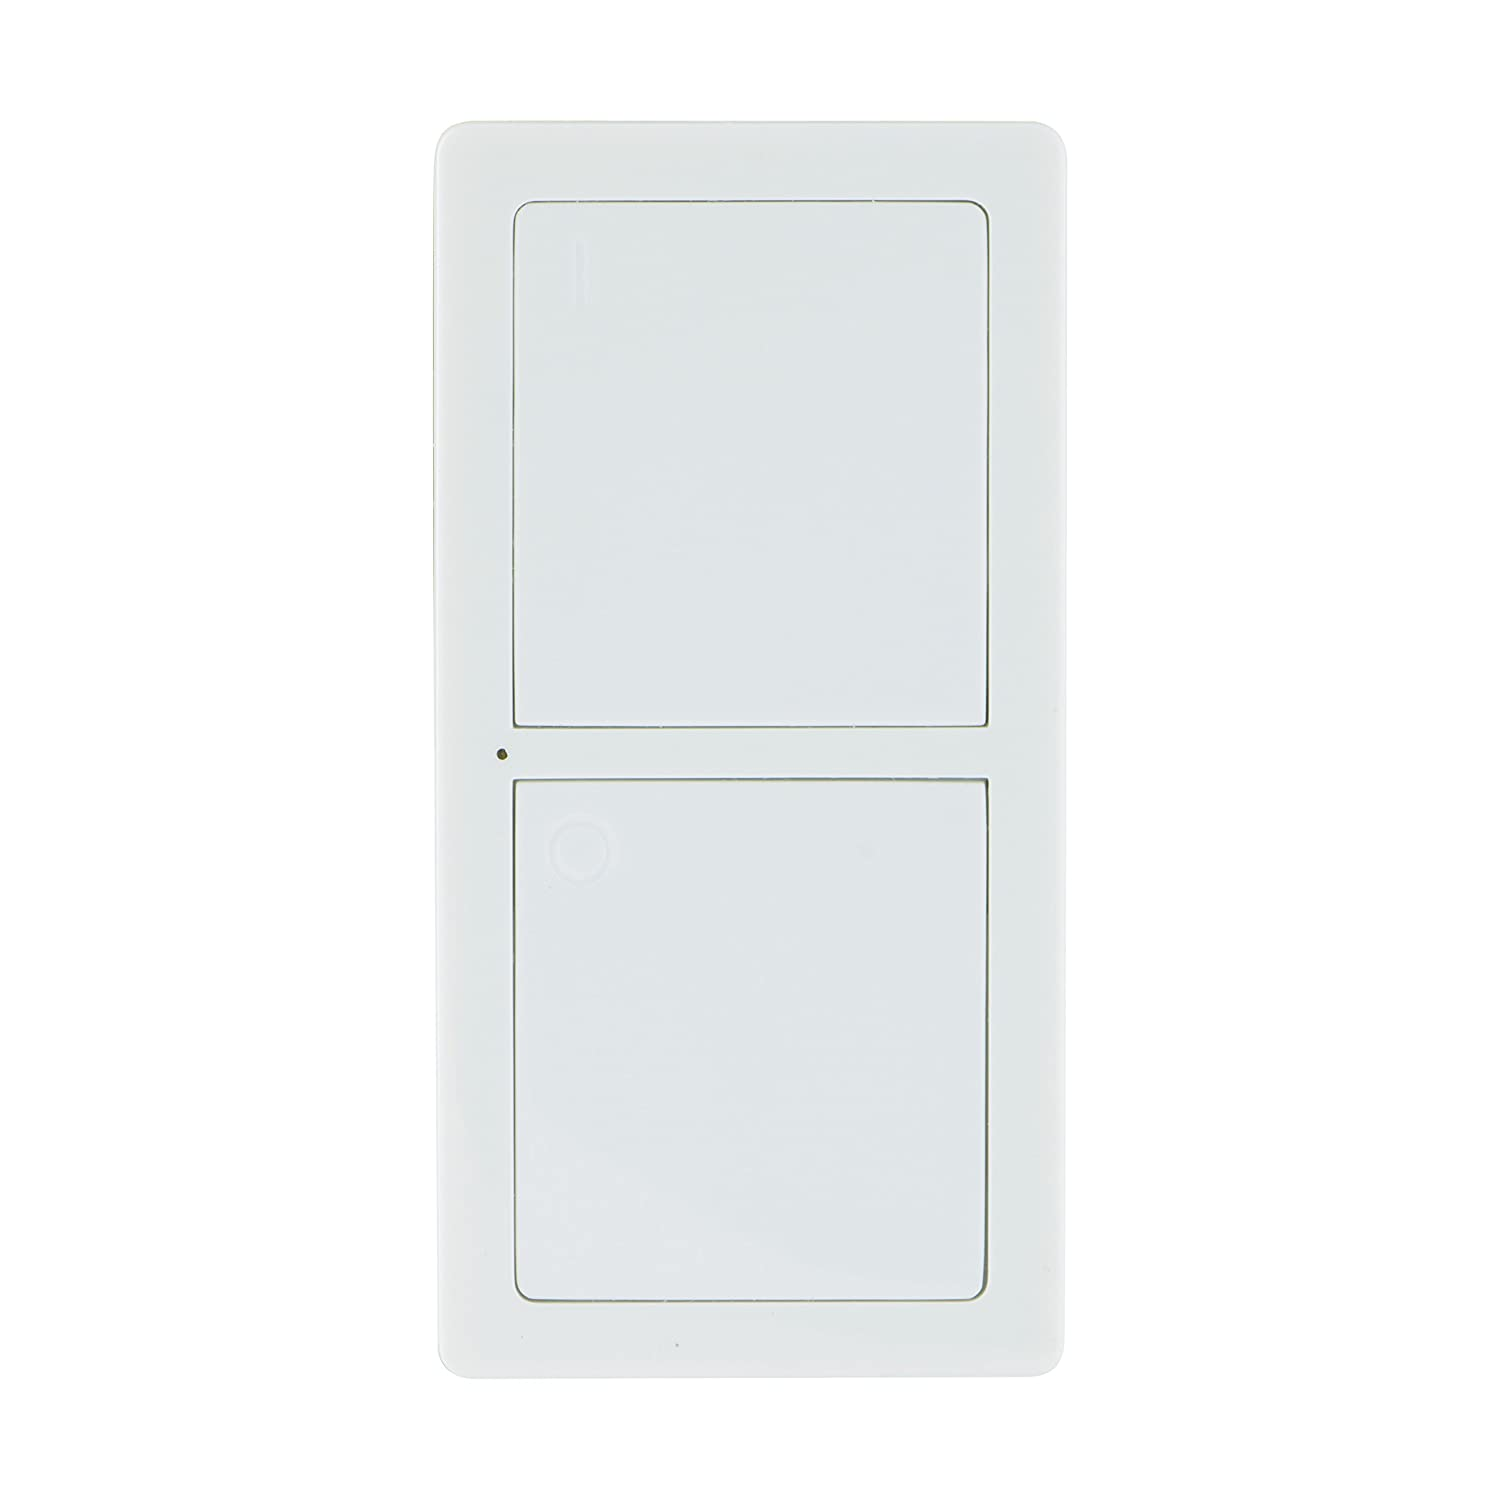 Ge Myselectsmart Wireless Remote Control Light Switch With Countdown How To Wire A Plug Outlet On Off 4